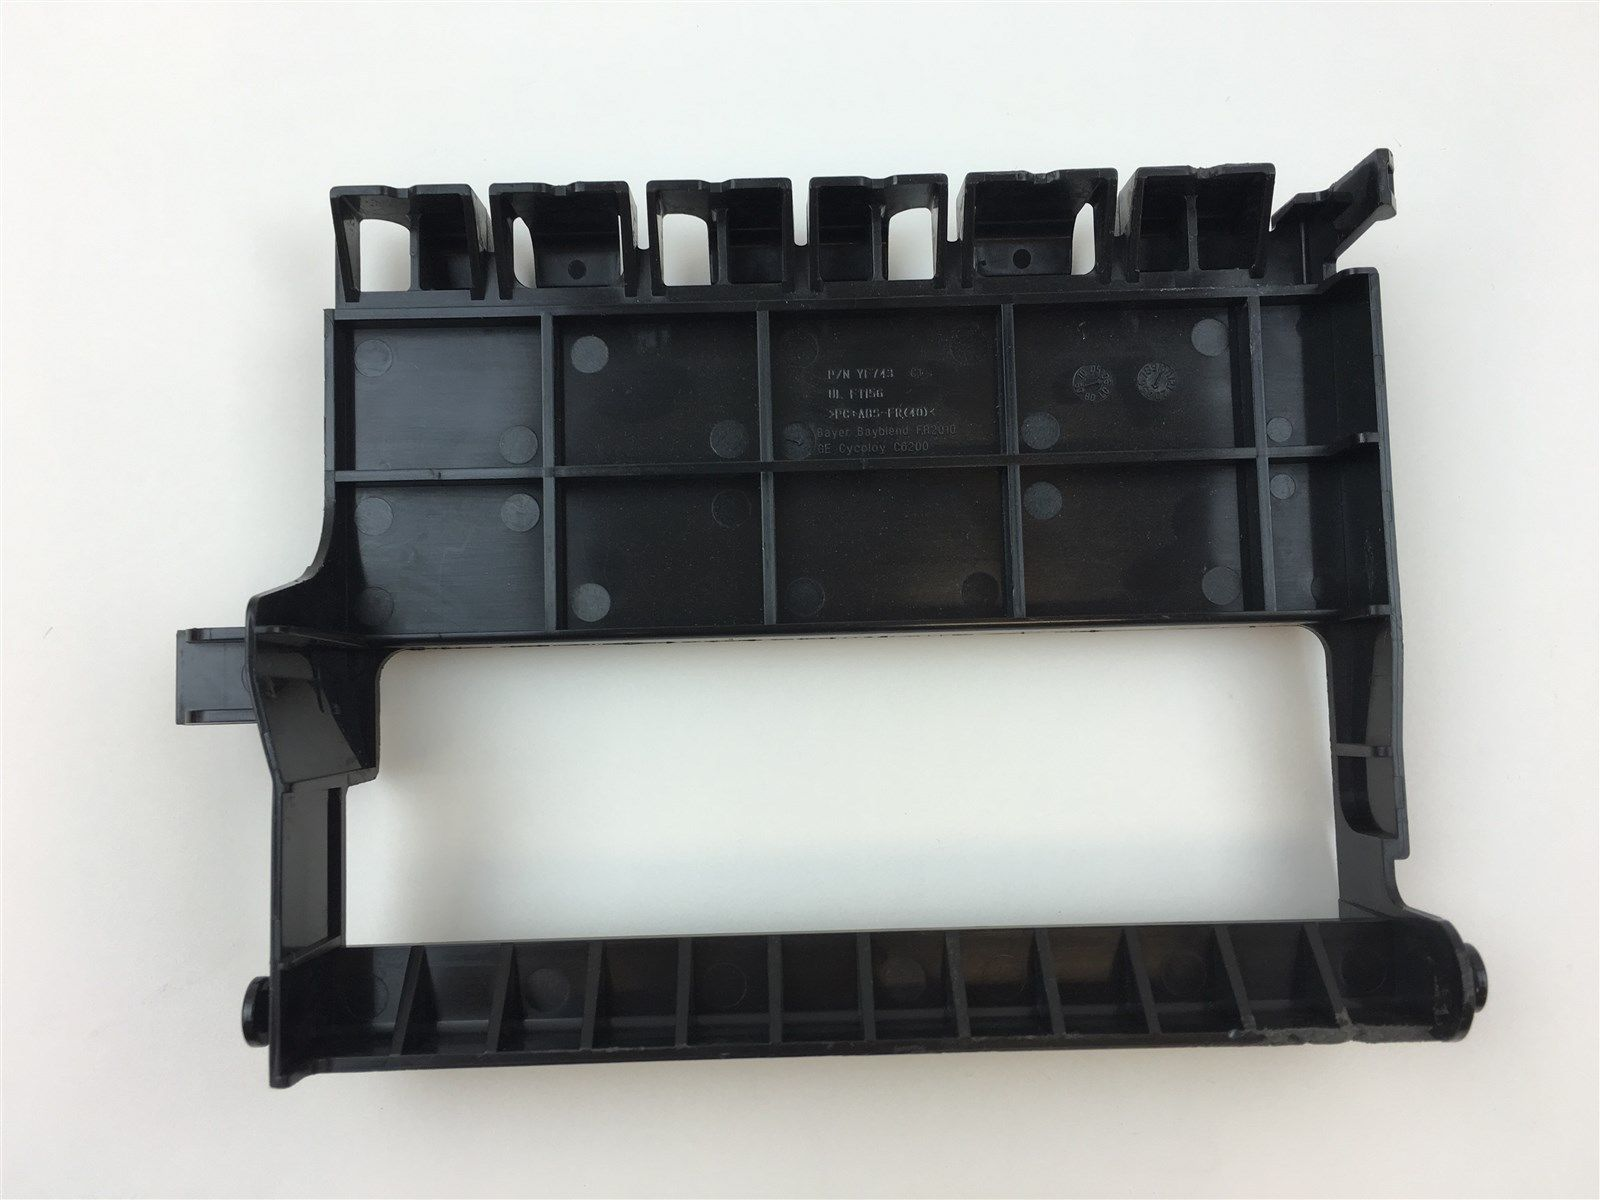 Genuine Dell PowerEdge 2900 PE2900 Internal Shroud Cover YF743 0YF743